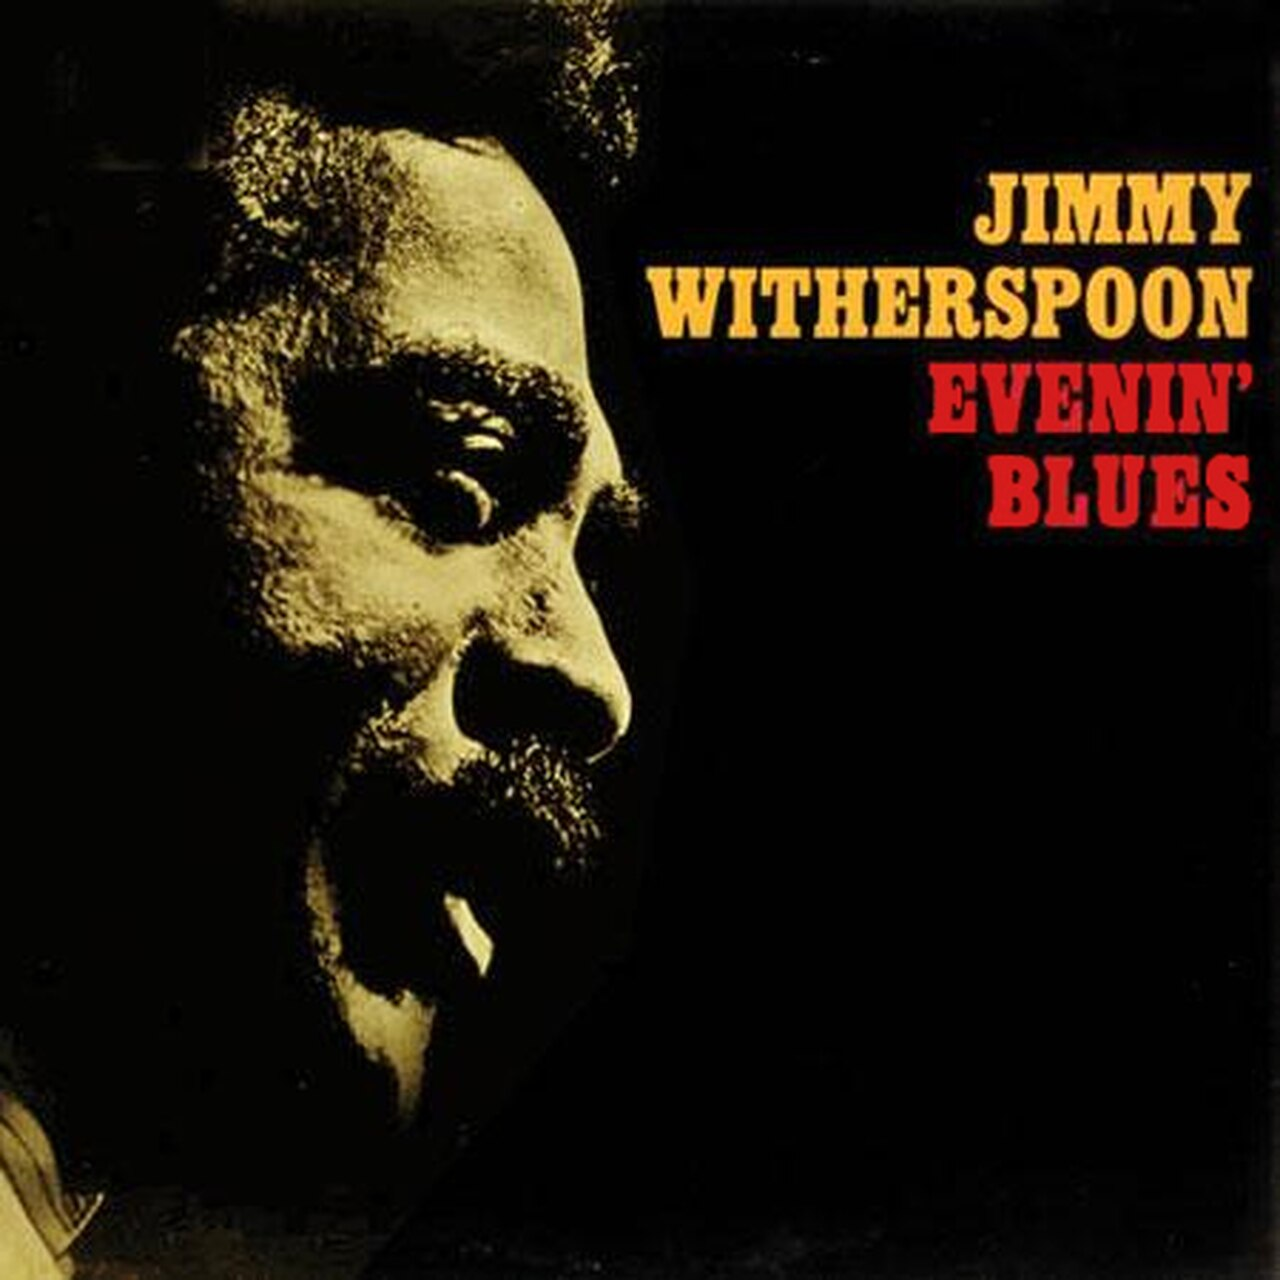 Jimmy Witherspoon - Evenin' Blues (Stereo)